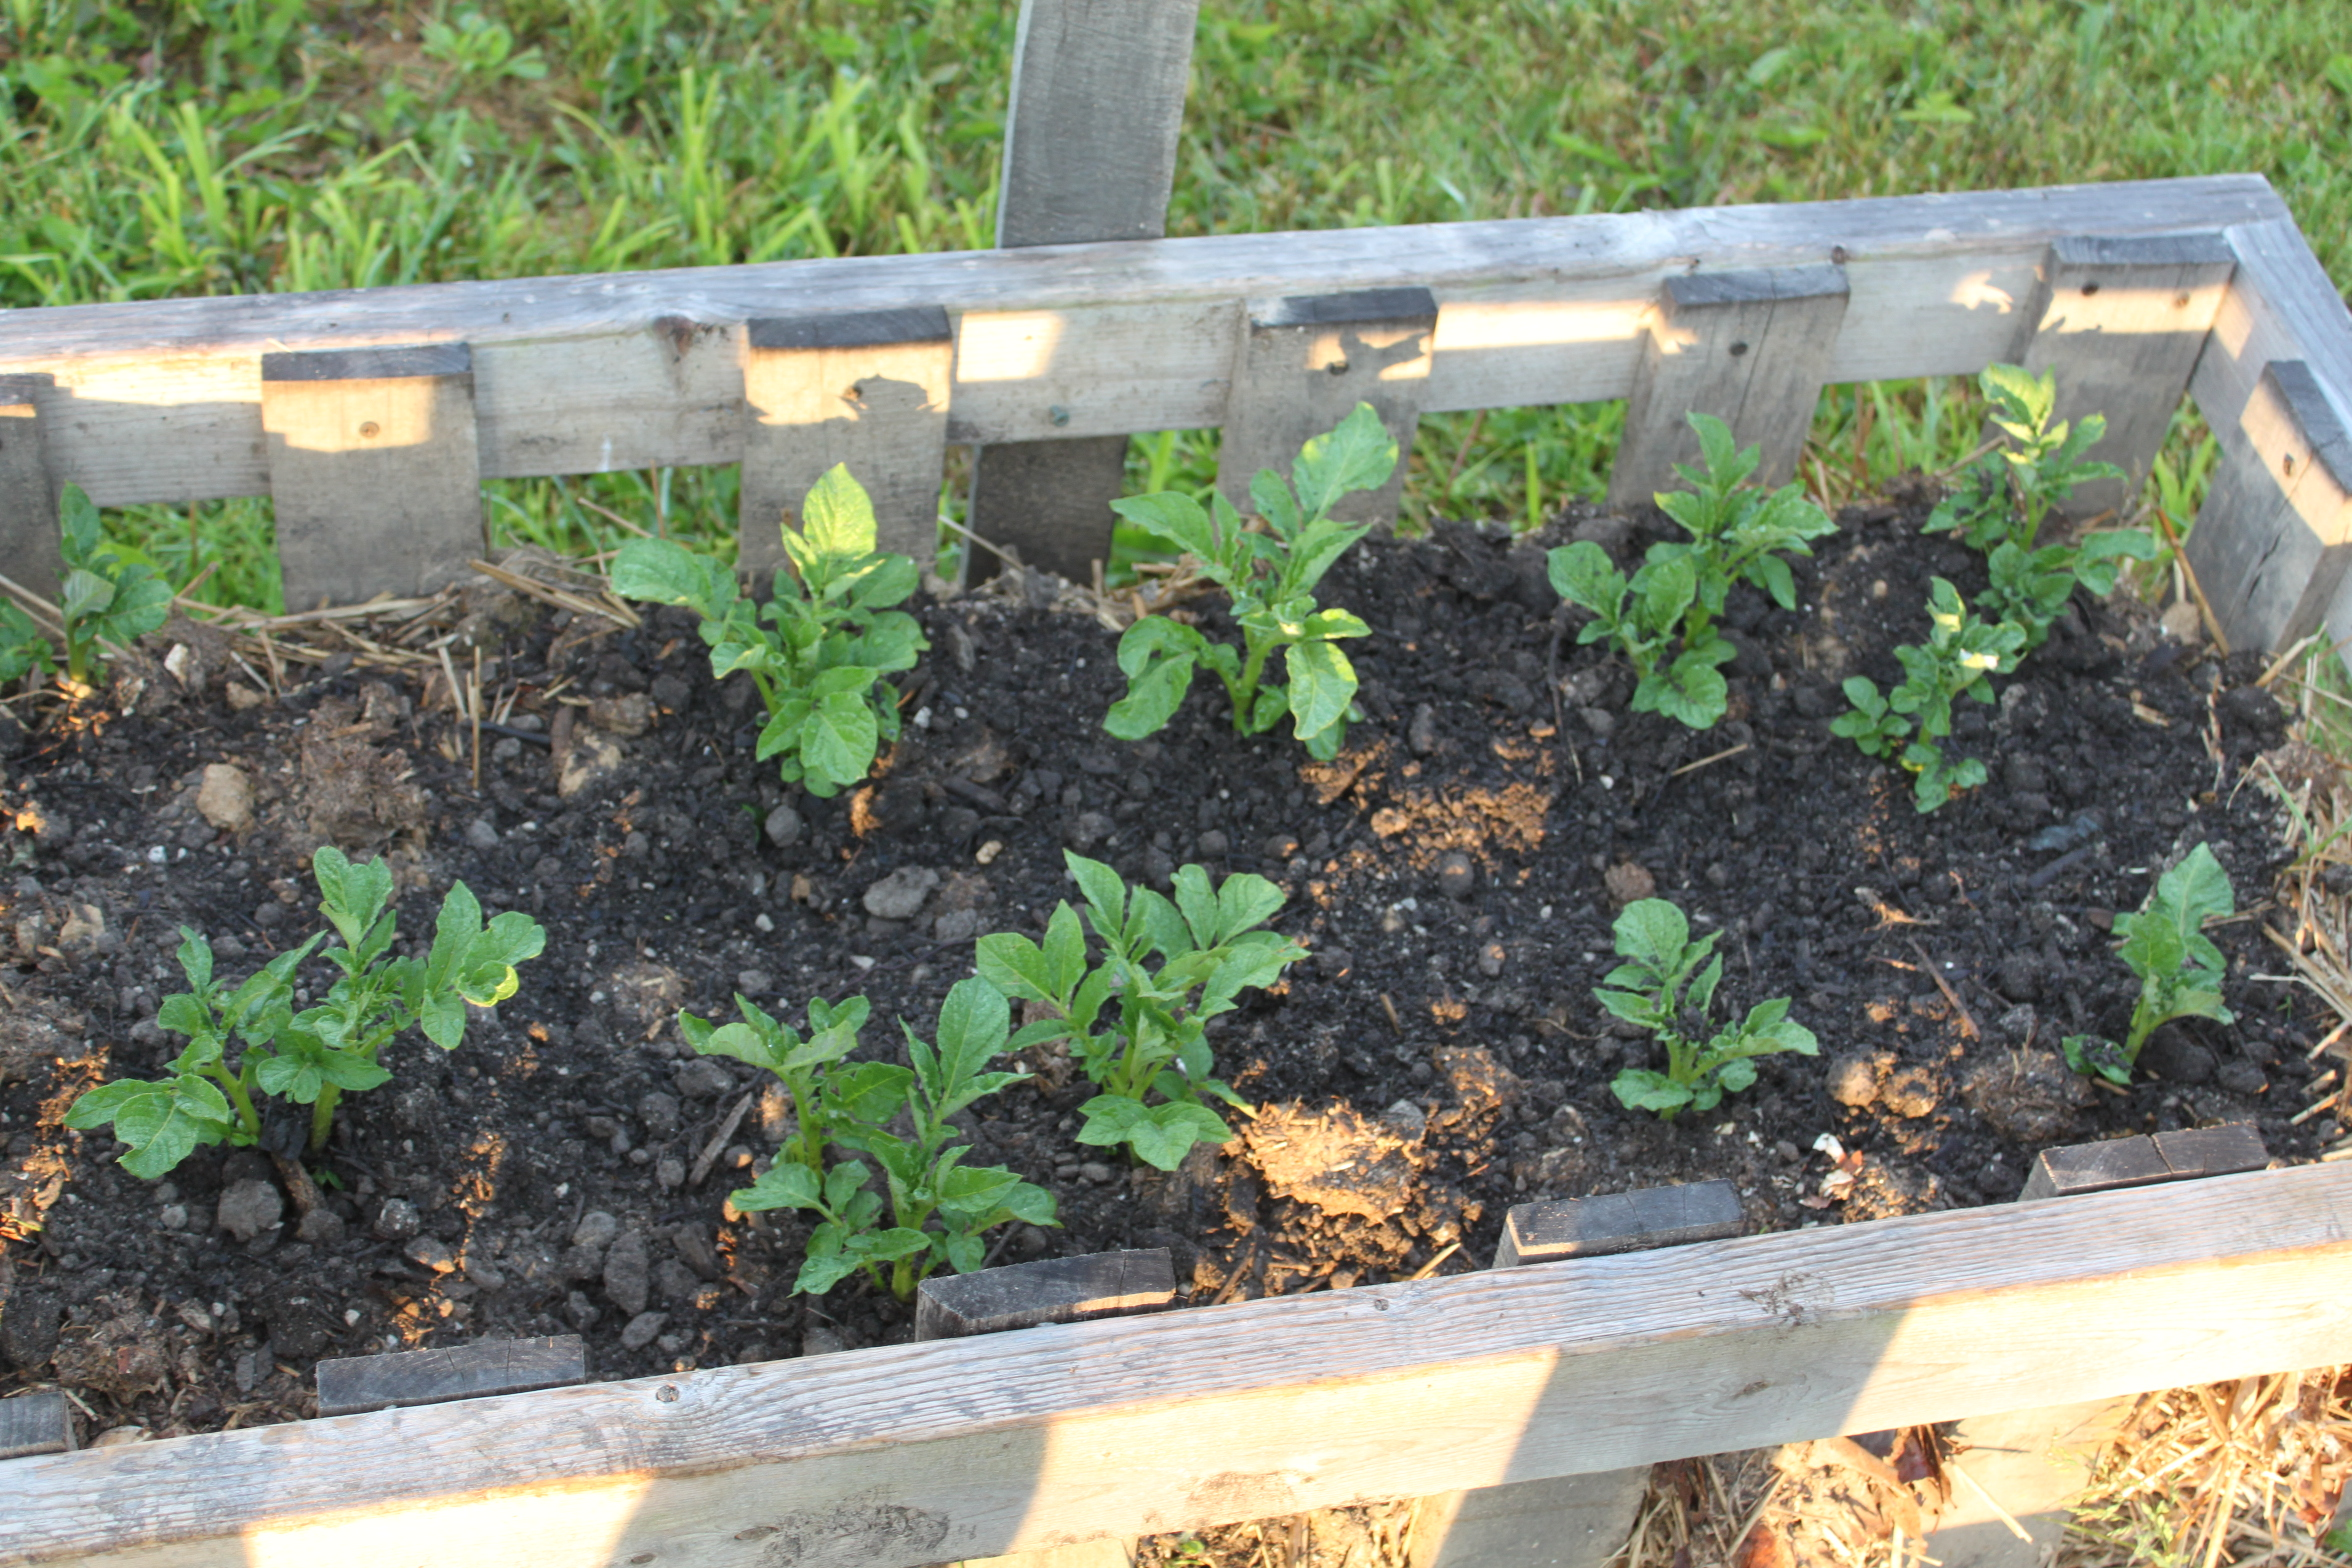 Growing Potatoes With Homemade Potato Crates